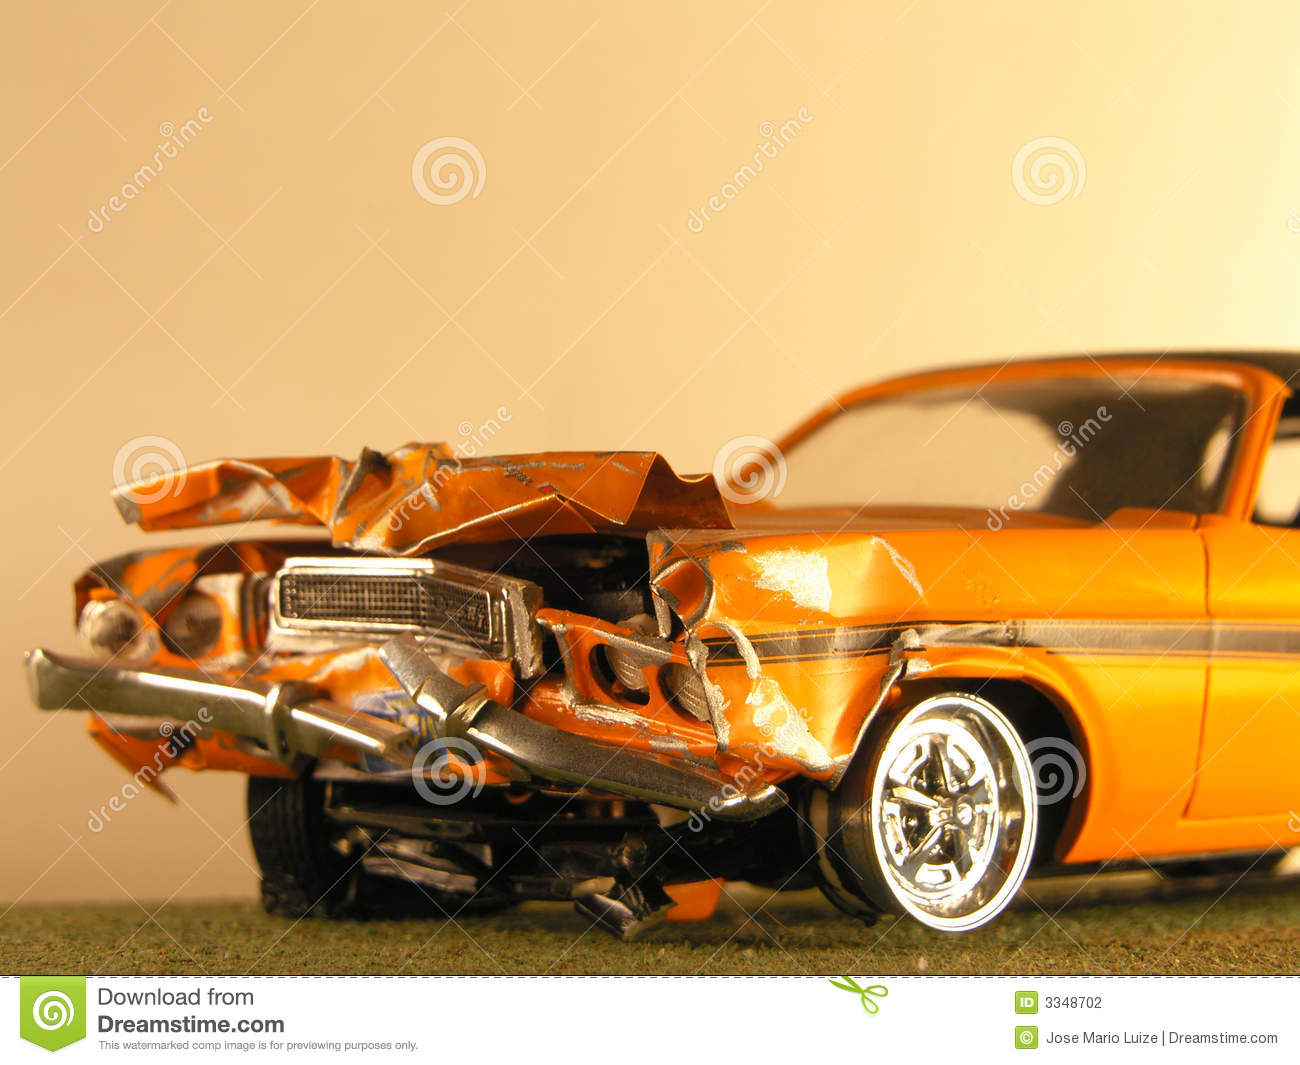 Plastic Model Of A Muscle Car Stock Photo - Image of plastic ...